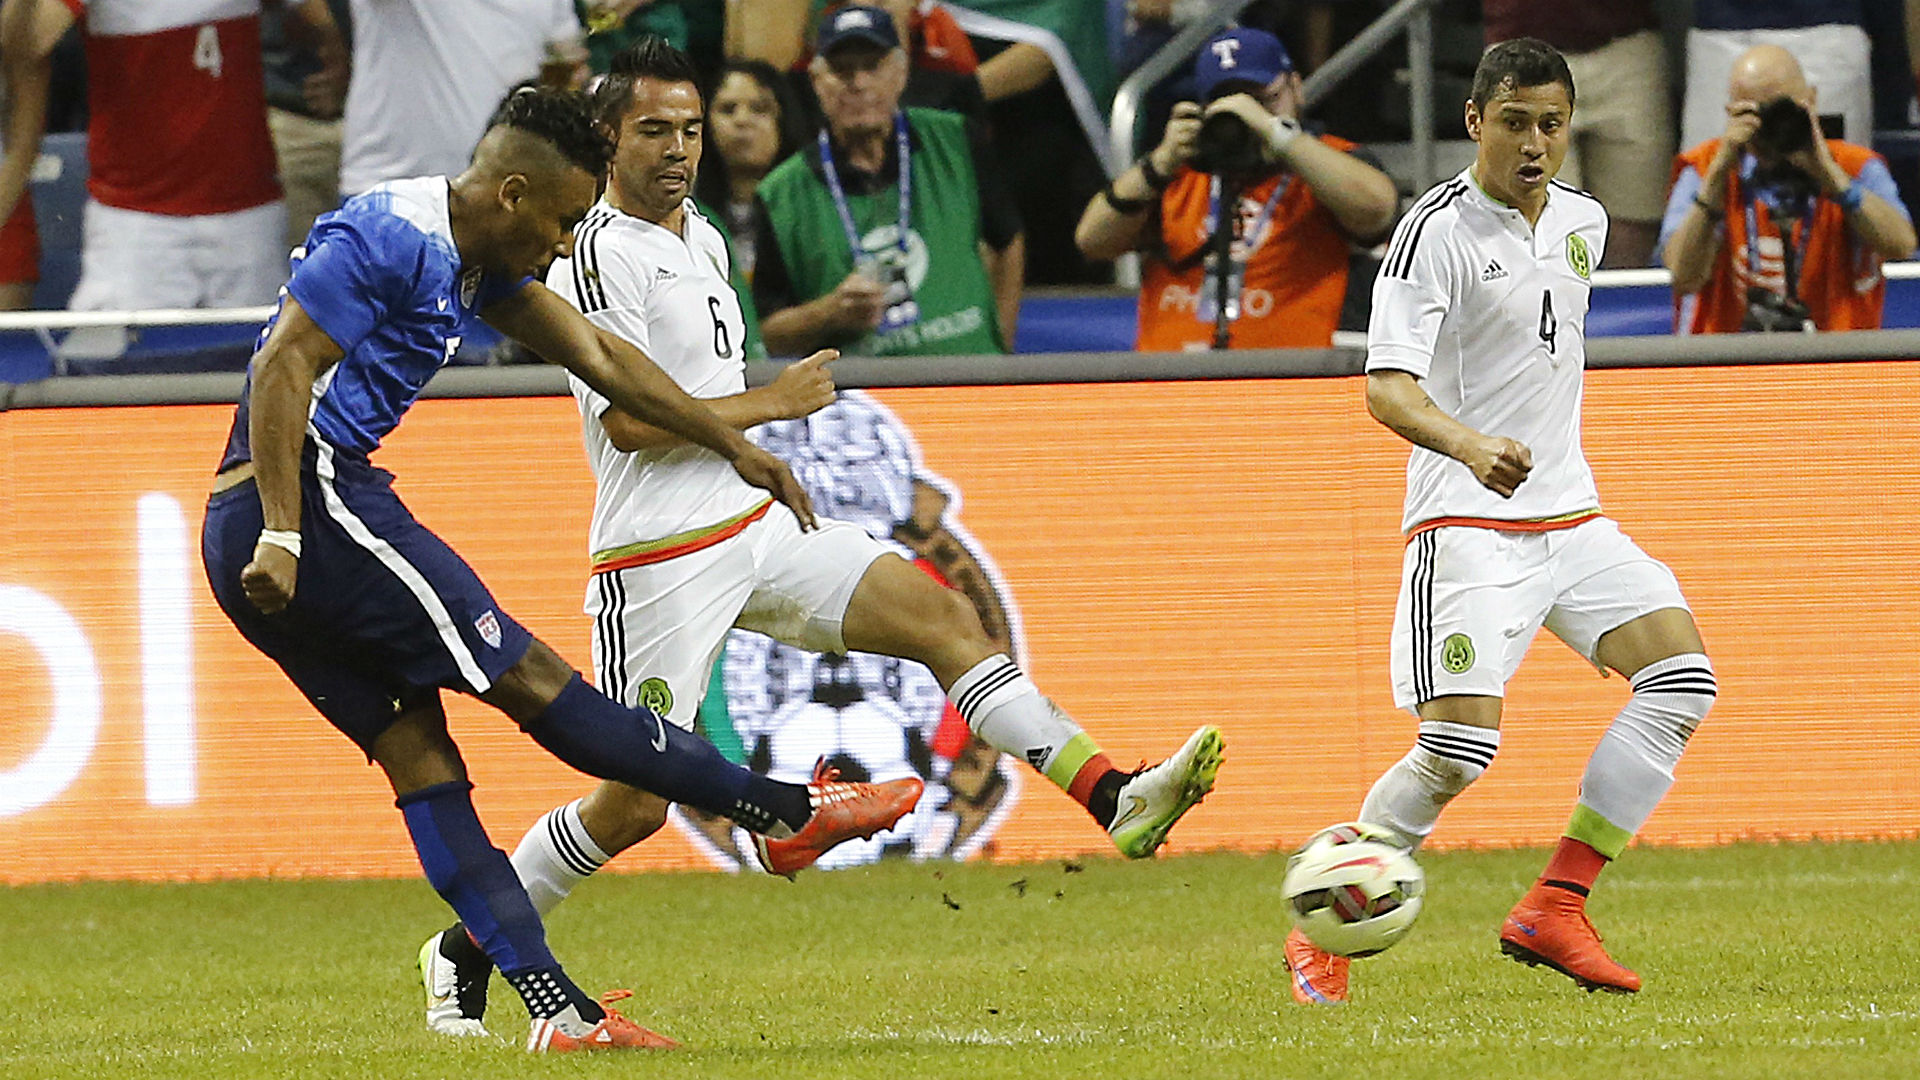 U.S. youngsters help their cause in victory over Mexico